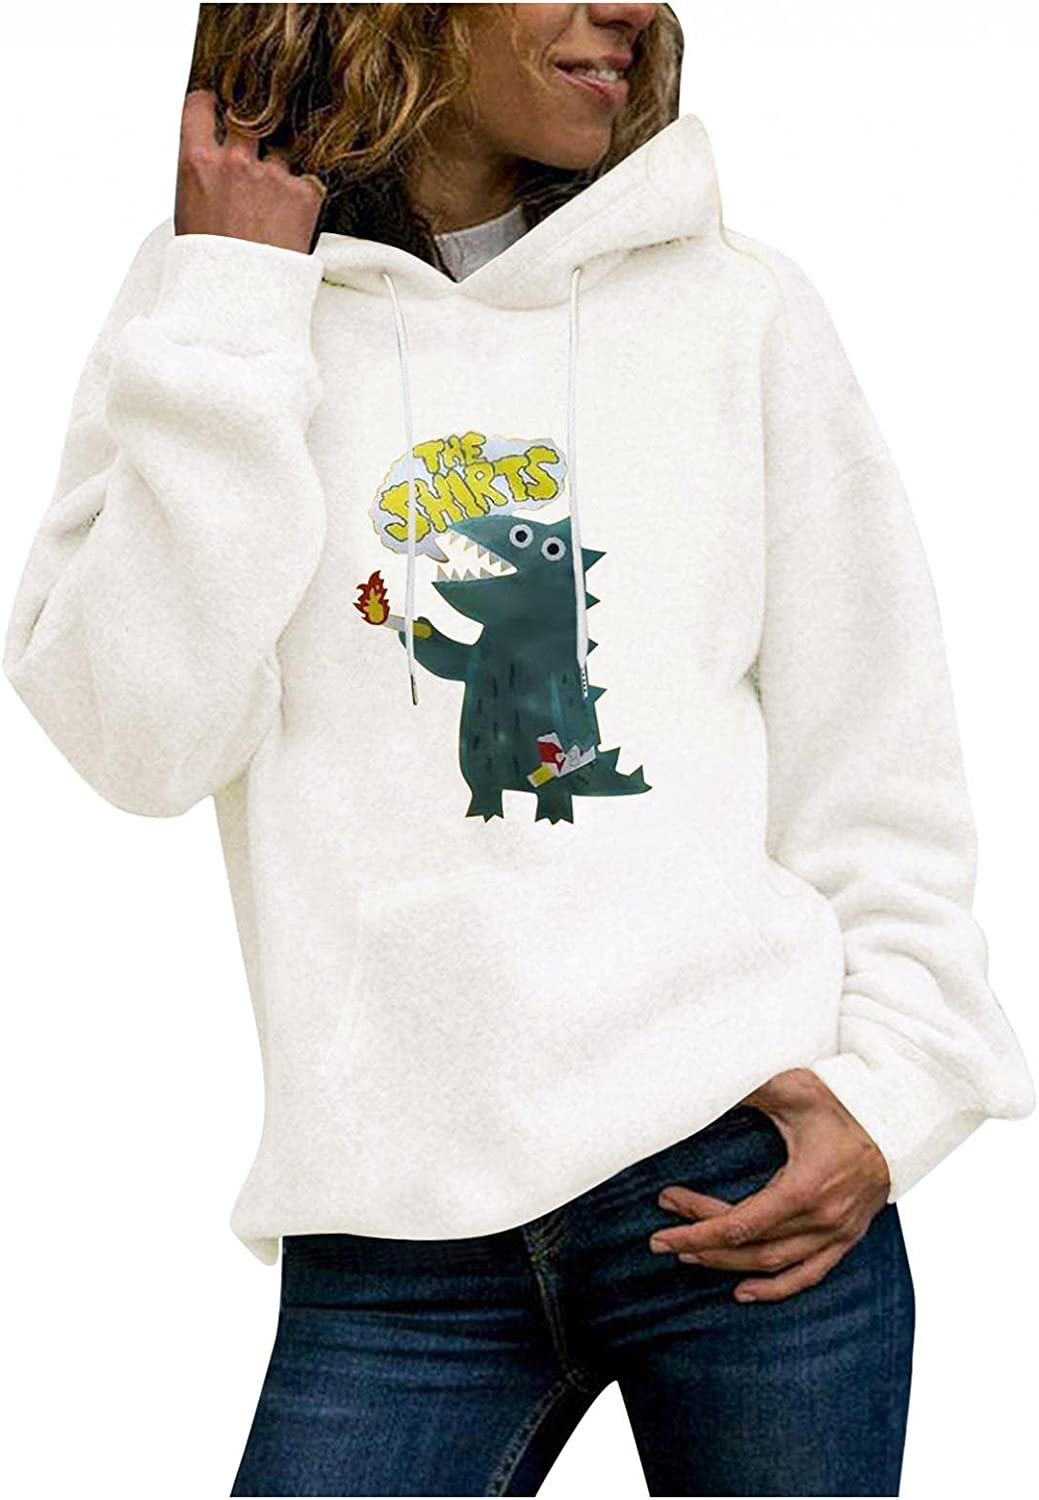 Zieglen Hoodies for Women Dinosaur Workout Plus Size Cute Long Sleeve Casual Loose Sweatshirts Pullover Tops Shirts Sweaters